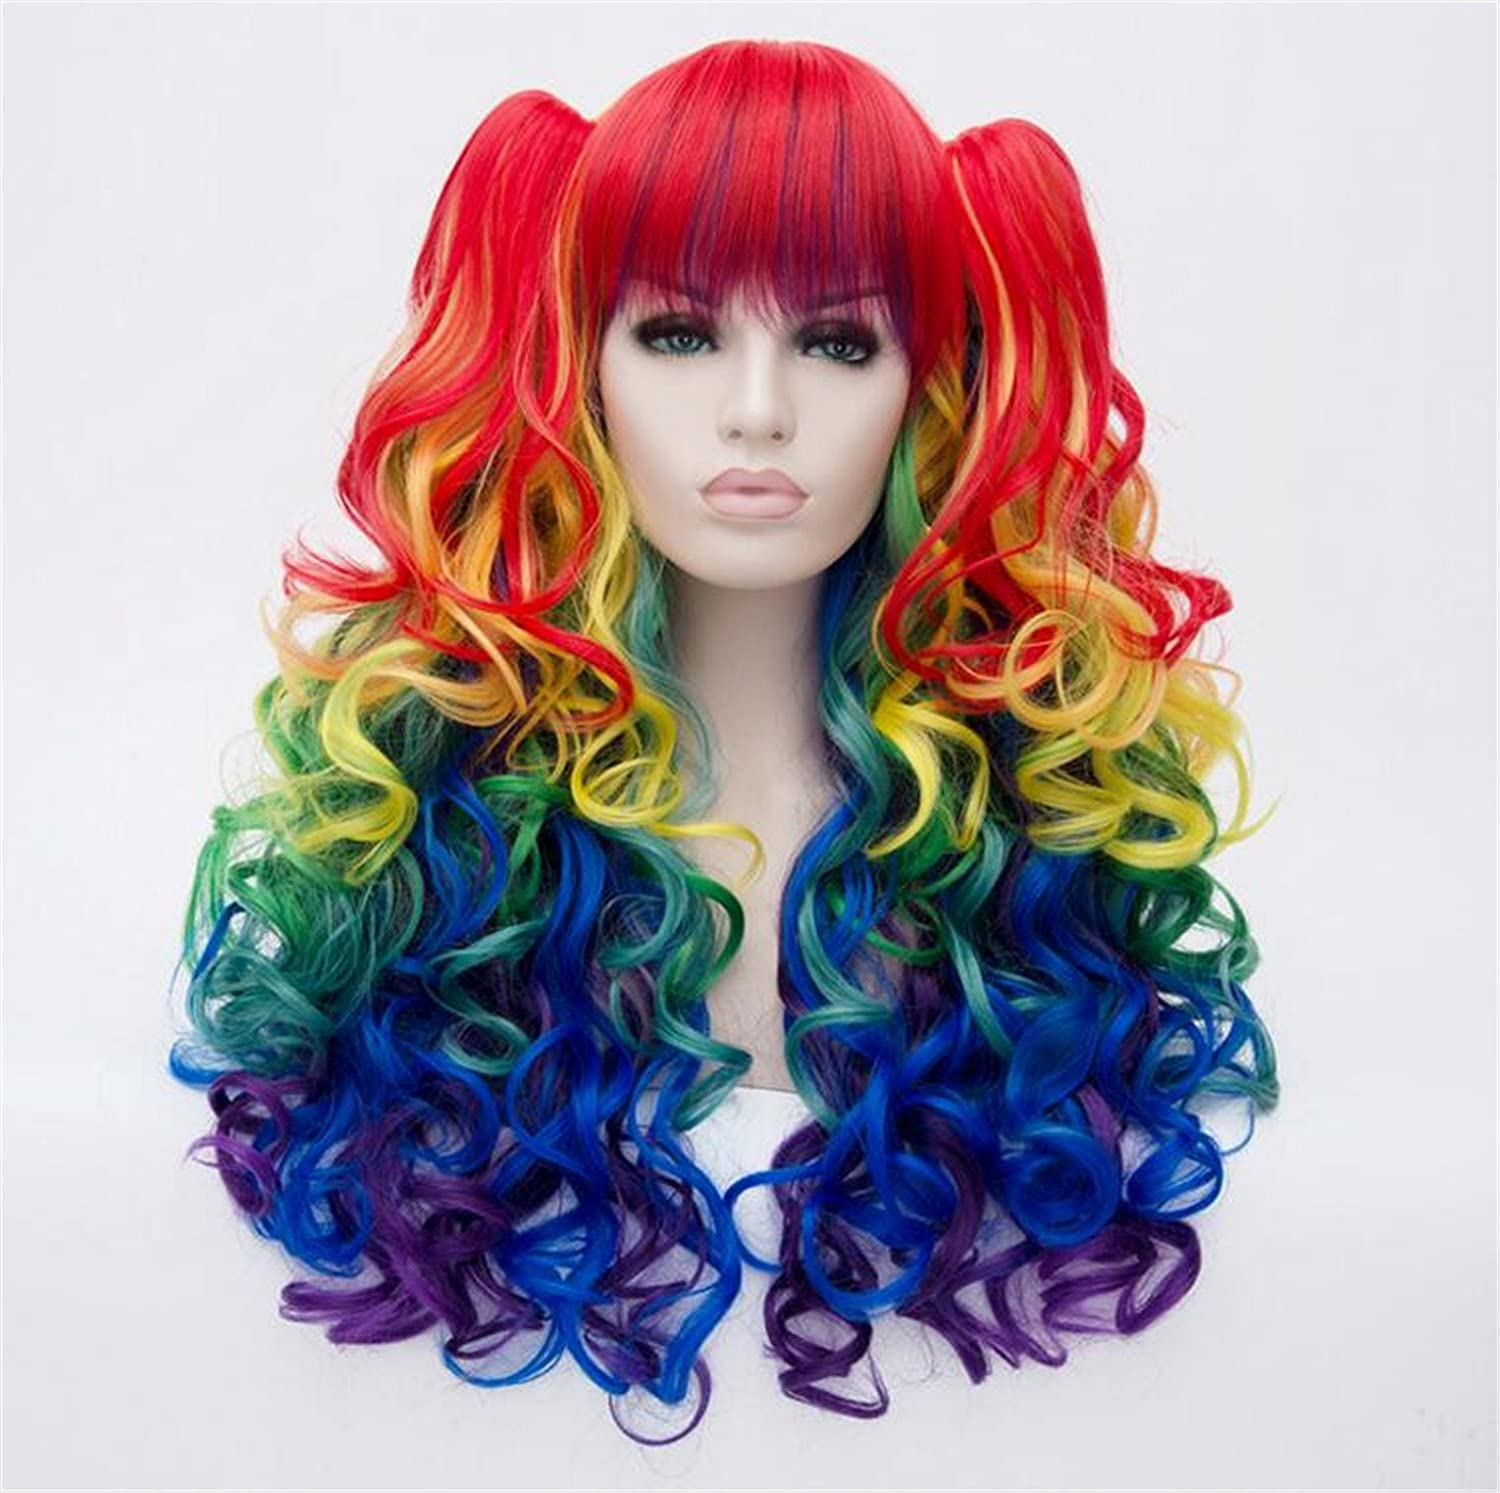 Amazon.com: ATOZWIG Long Rainbow Curly Cosplay Wig with Ponytails Synthetic Hair Costume Wig: Beauty